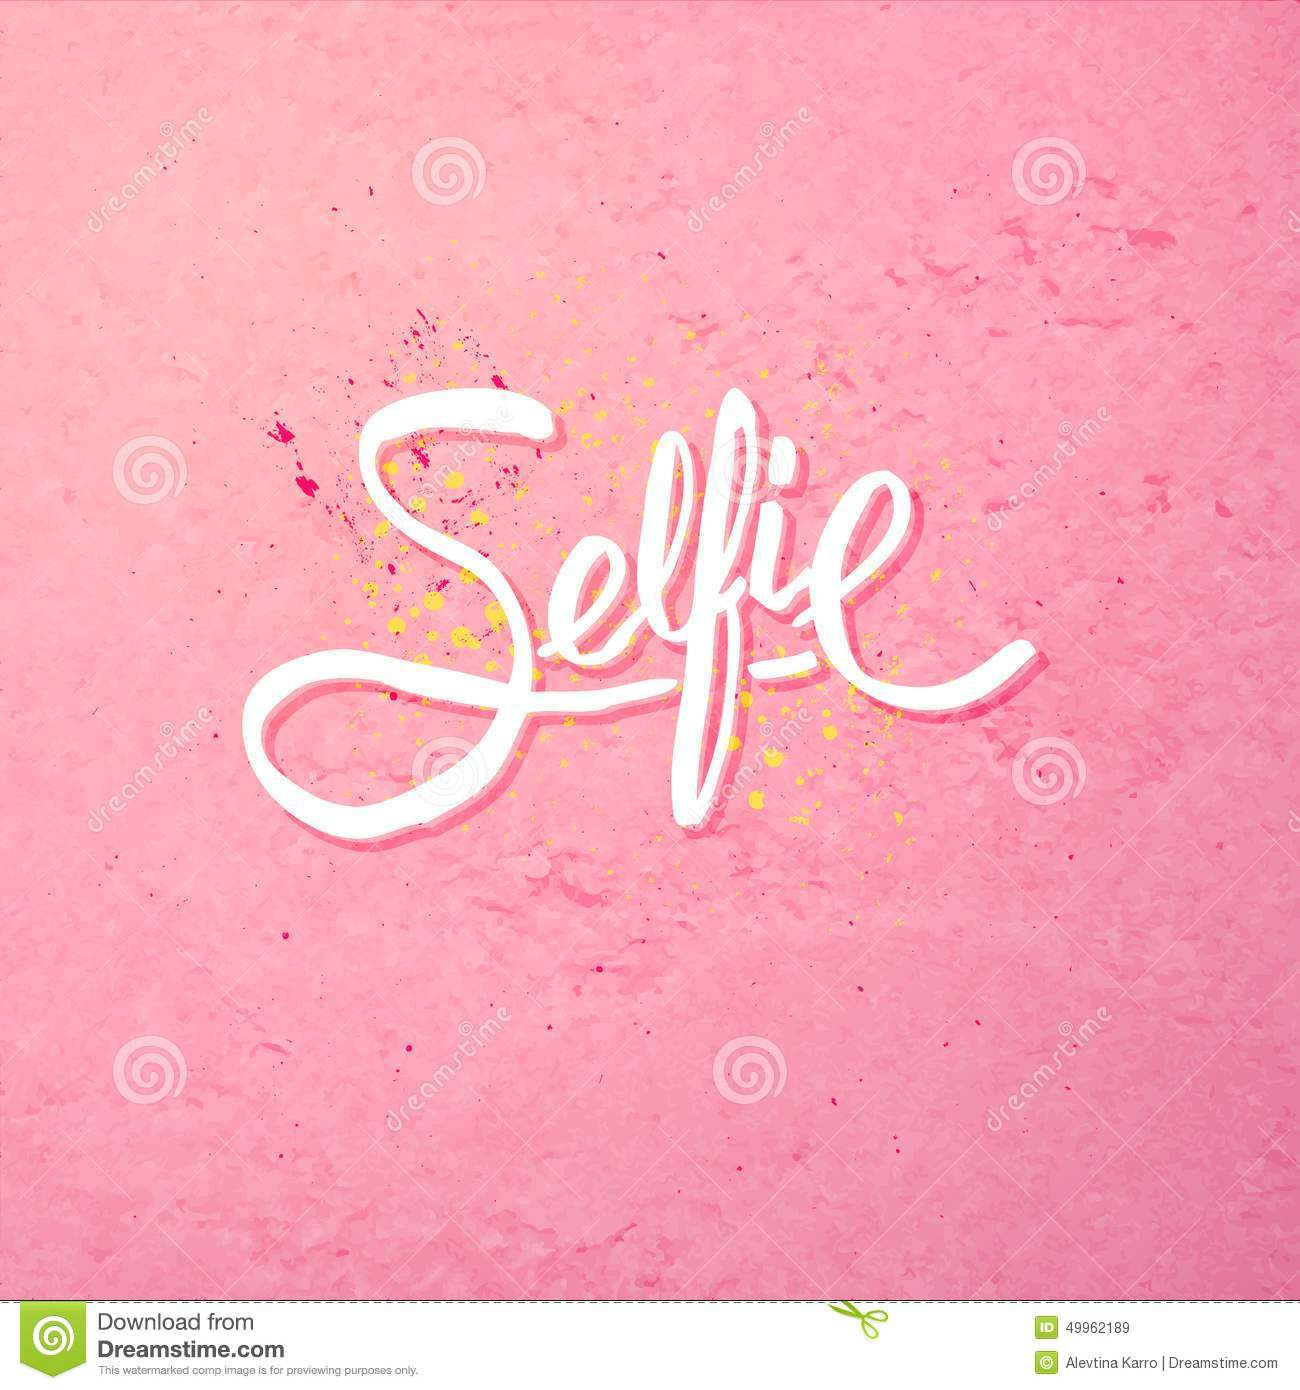 Simple Text Design for Selfie Concept on Pink